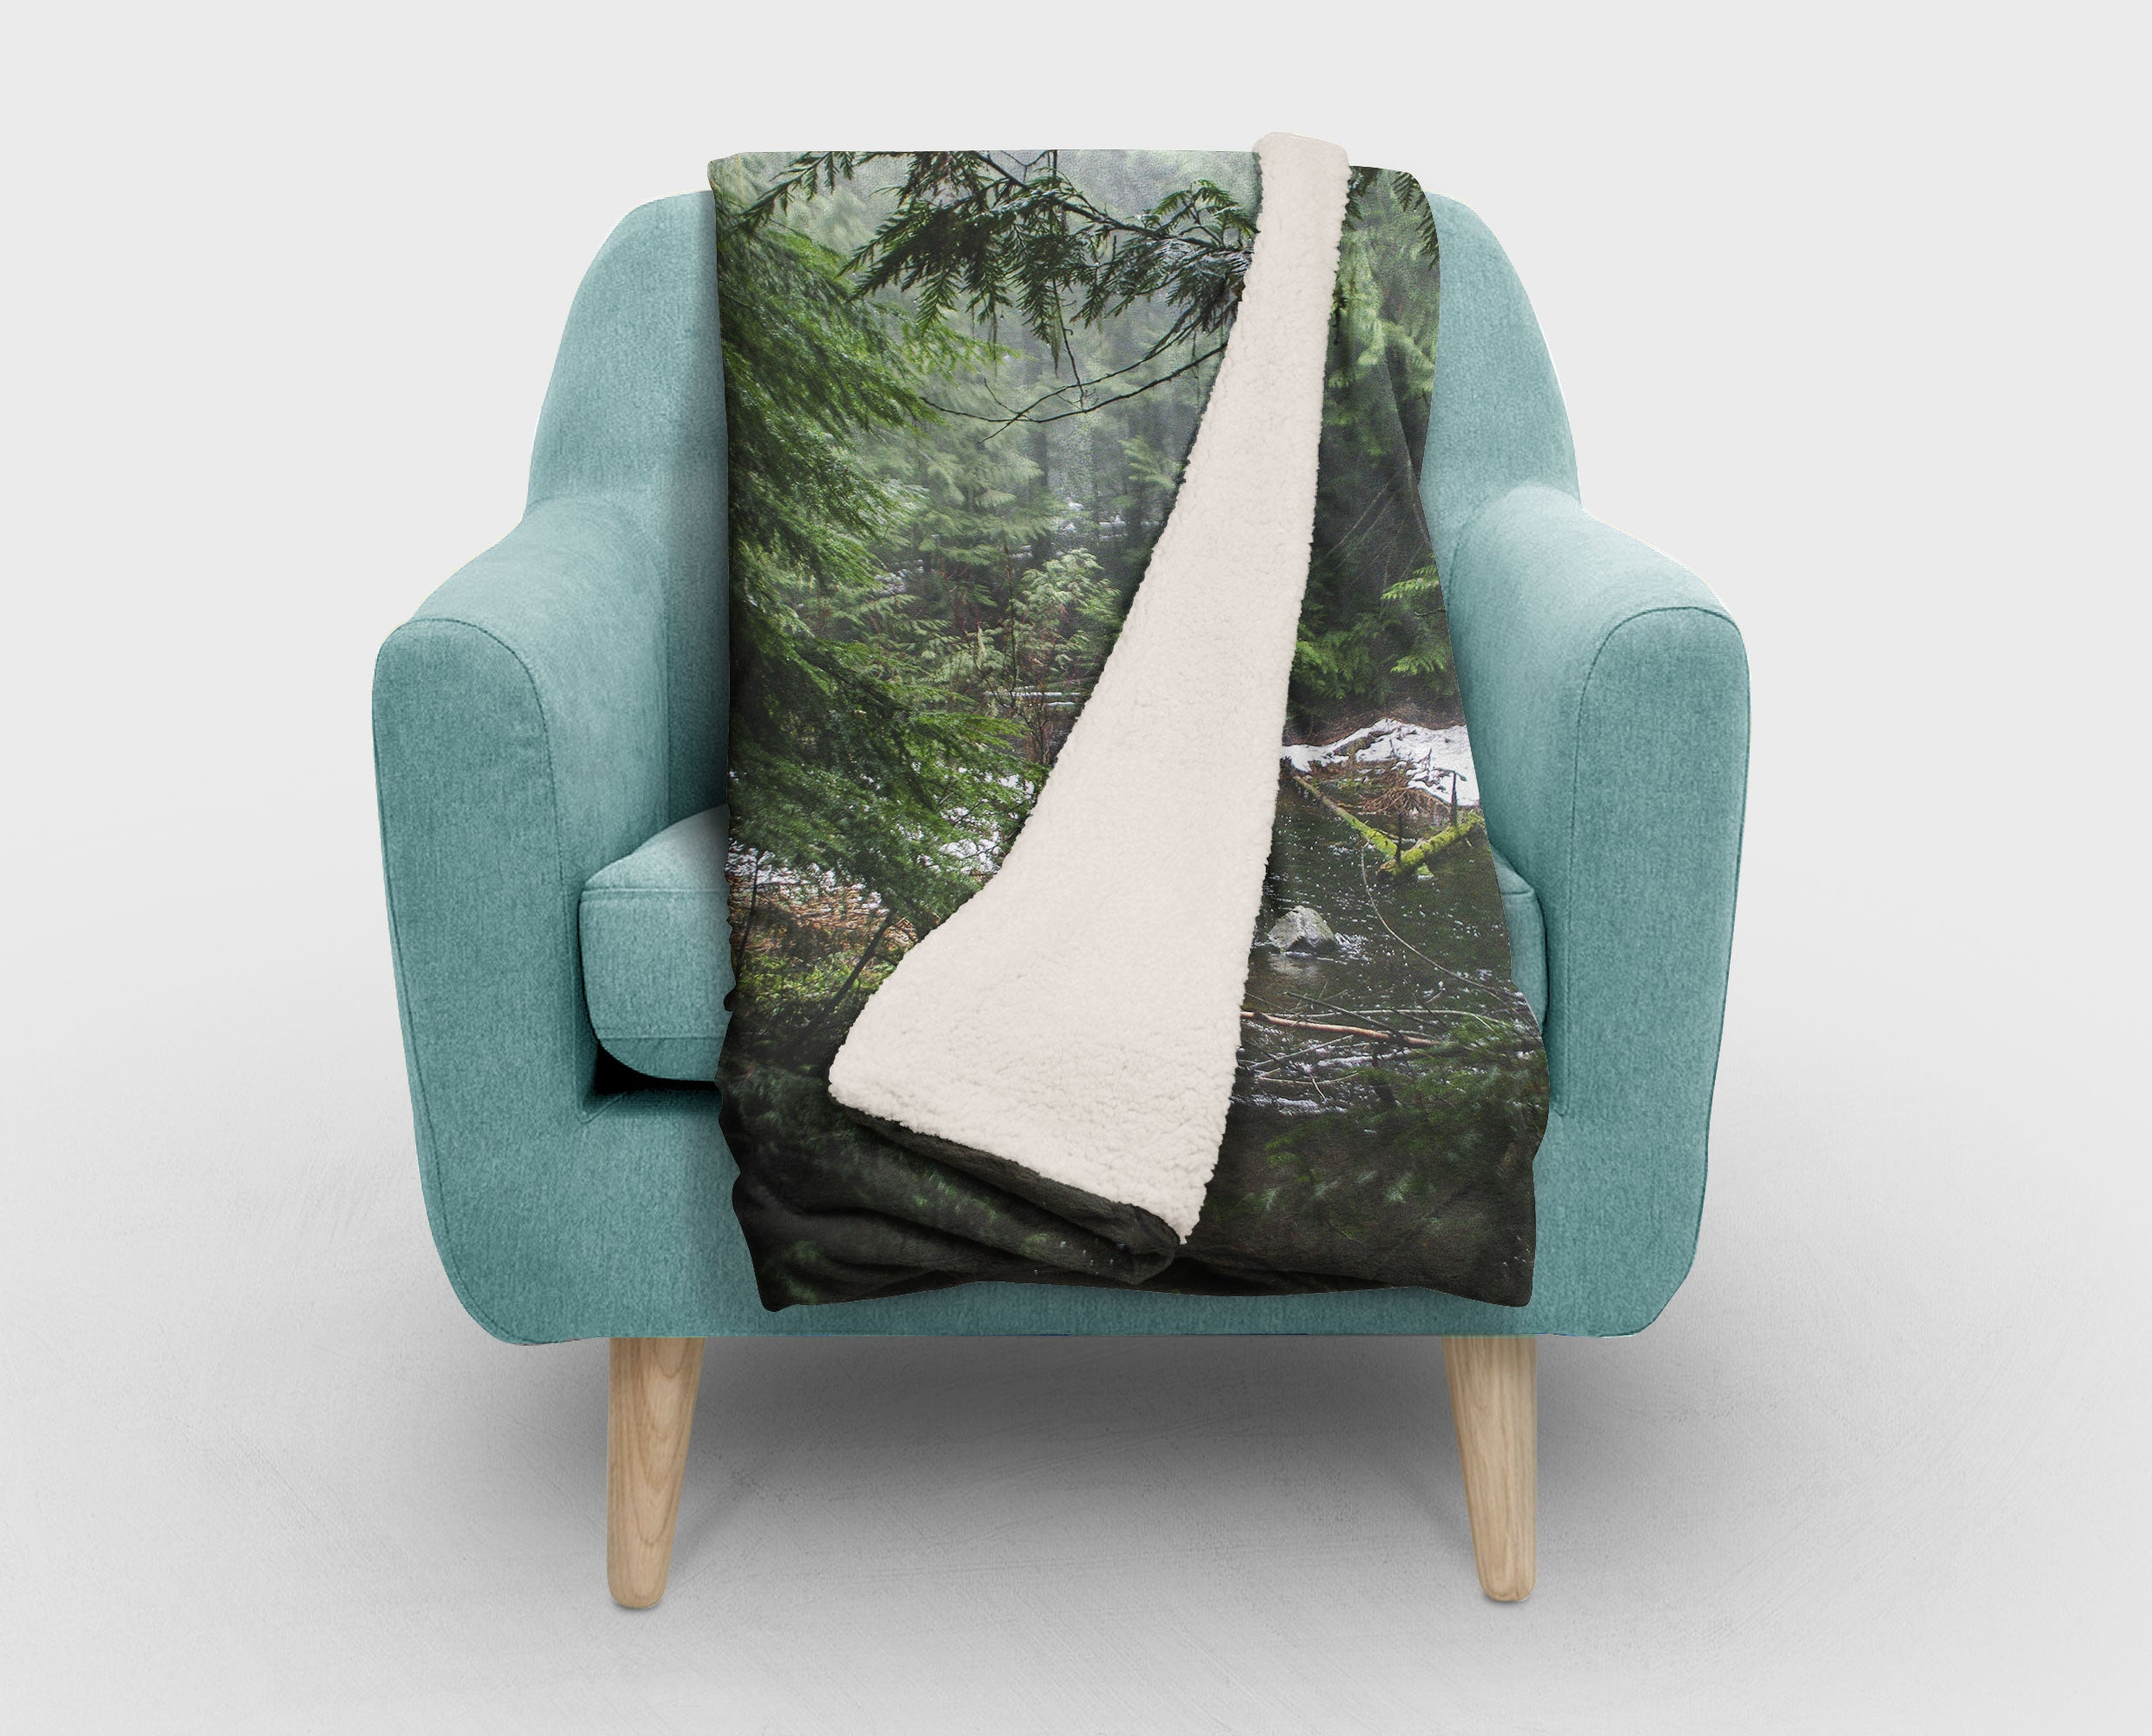 Pacific Northwest Cedar Forest Sherpa Fleece Blanket - 2 Sizes